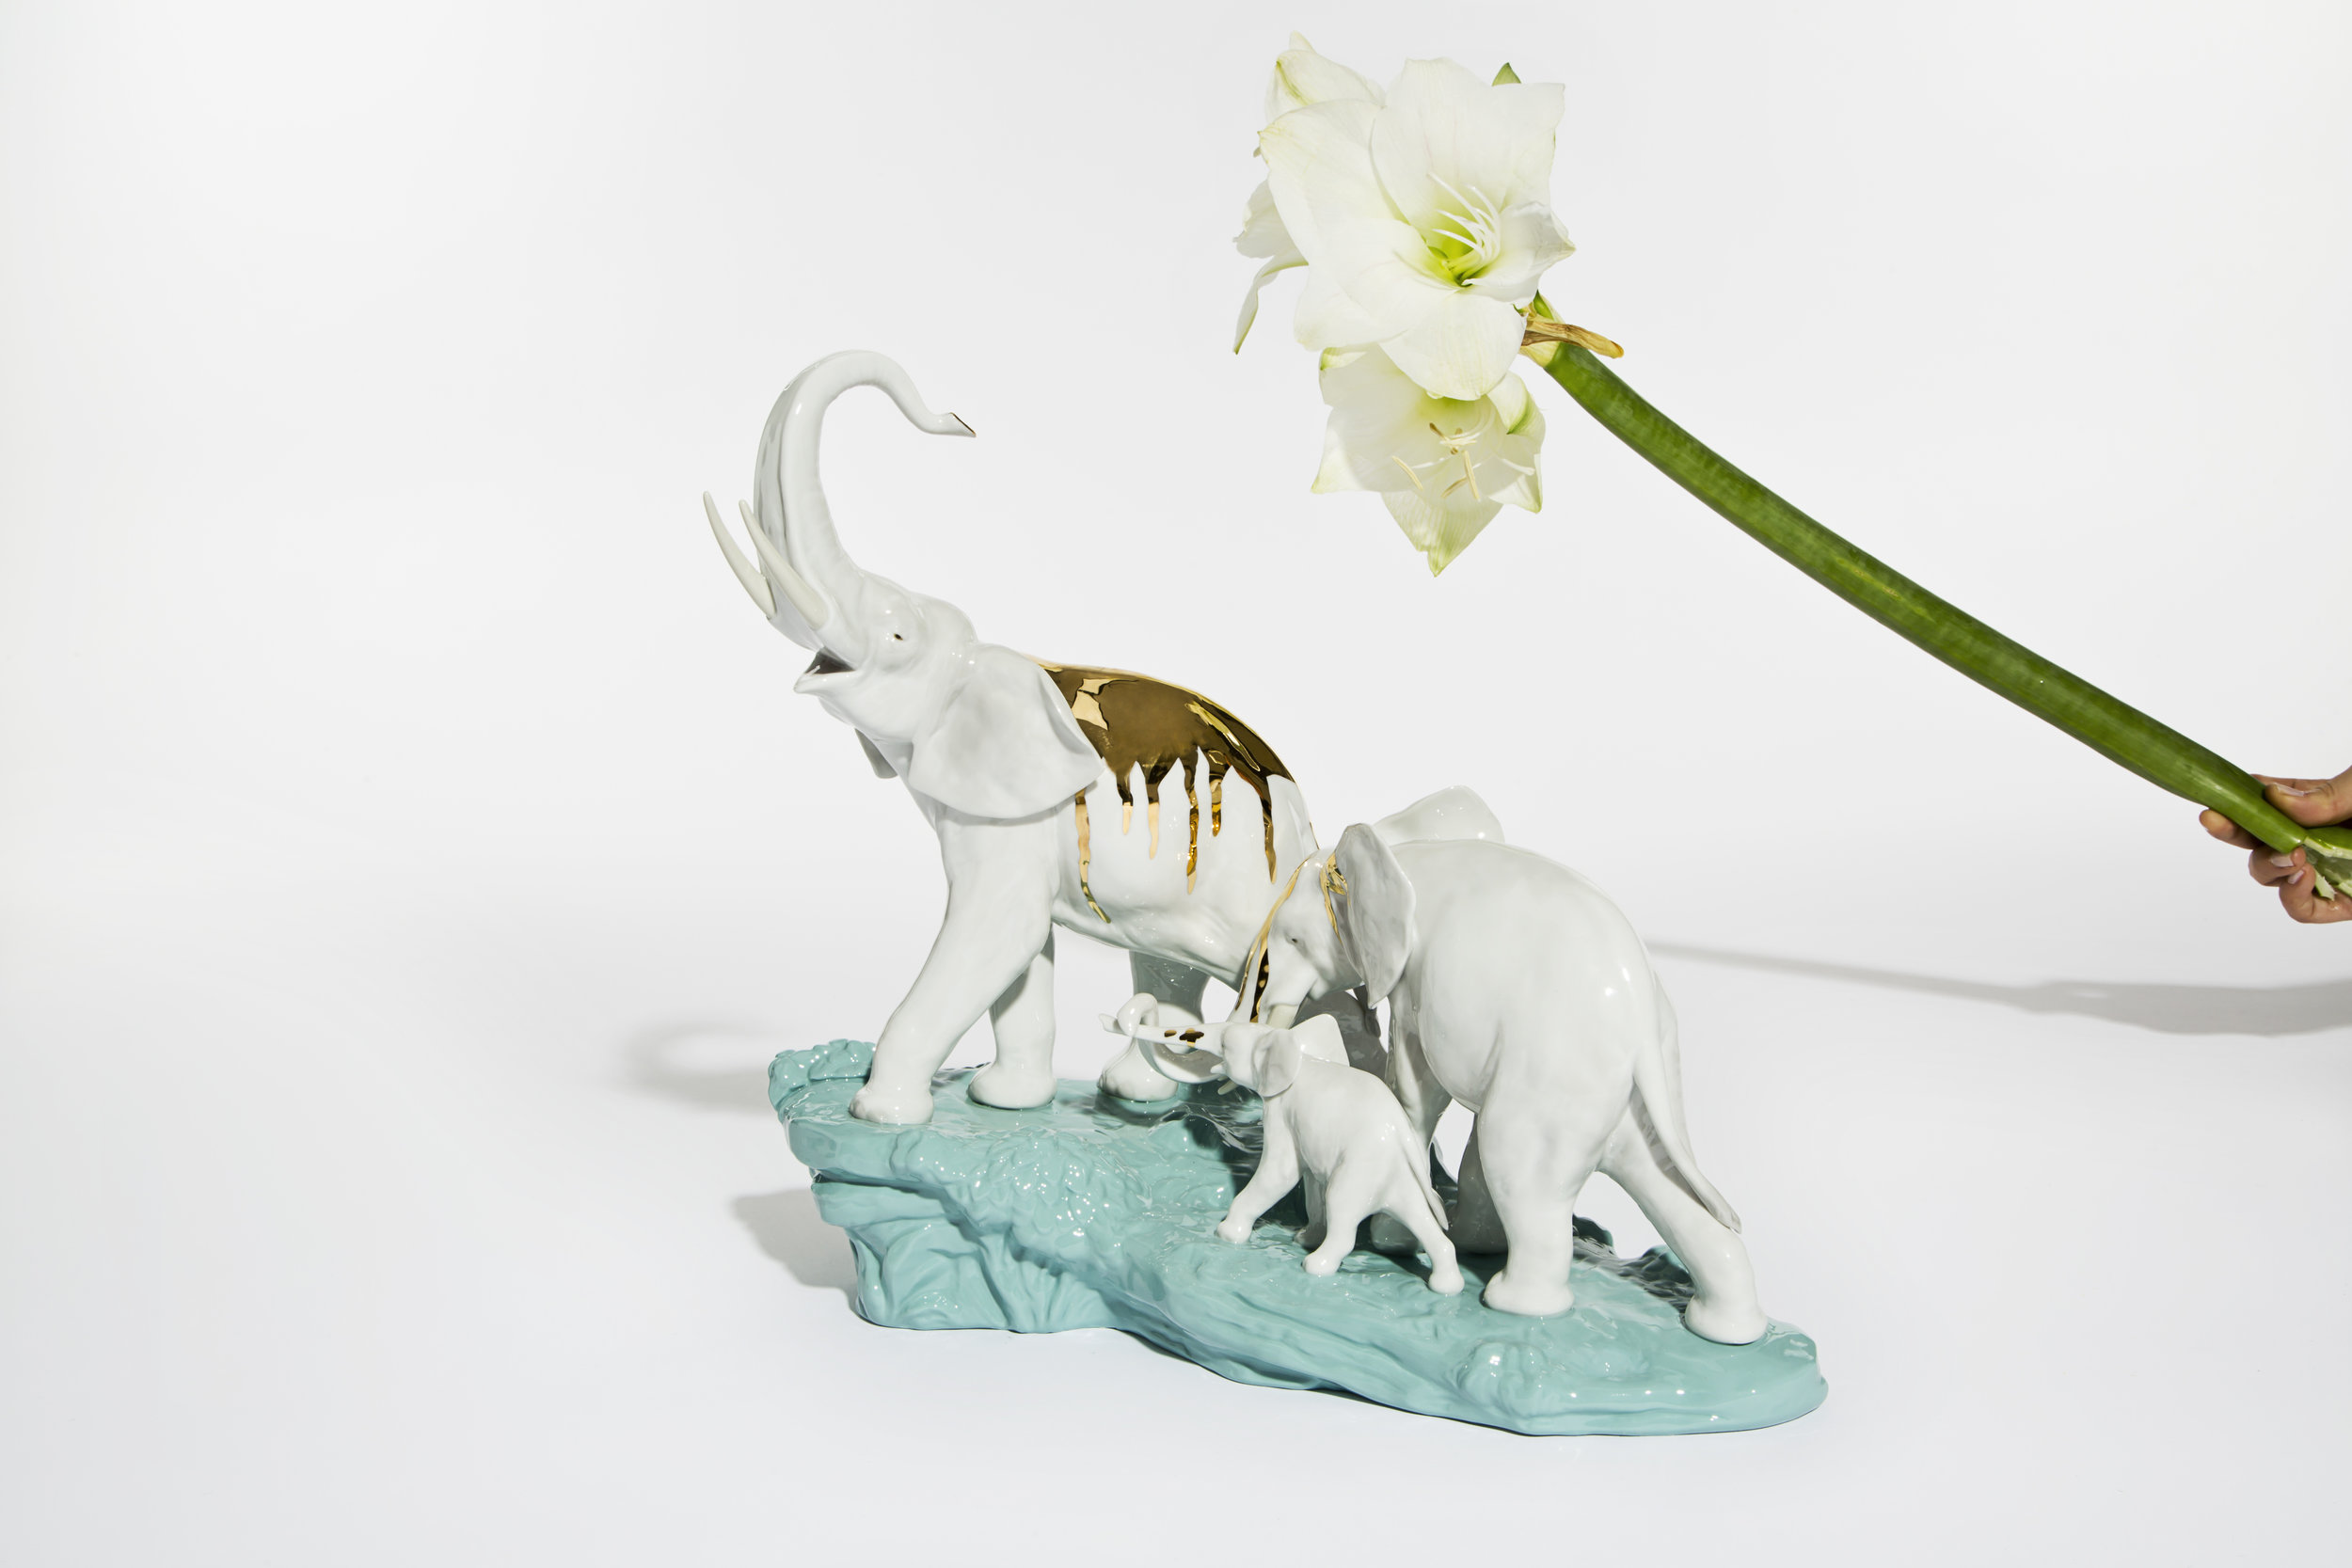 "ELEPHANTS WALKING  Clare Page & Harry Richardson for Lladrò    Dream and reality take form in a single suggestive scene Elephants Walking is part of the ""Animals in an Unreal World"" collection inspired by ""Animal Kingdom"", a film directed by David Michod. The gold accents simulate the flow of water, giving this statuette image an ethereal and joyful appeal. ""What we do for Lladrò, is what we loved to do most: take objects that have already fulfilled the function for which they were created and give them new life."" - Clare Page and Harry Richardson Clare Page and Harry Richardson graduated from the Liverpool School of arts and are serial collectors of figurines, cups, vases and different decorative objects. For the designers, each piece tells its own story, that is both magical and surreal. 'Pragmatism and imagination,' is the pairs motto and at the heat of each of their creations. Lladrò was founded in 1953 by Juan, José and Vicente Lladró. Every piece is the result of a laborious artistic process. To this day, the sculptors follow their own inspiration but also follow the leadership of the brand and if the work requires it, a meticulous process of research and documentation."